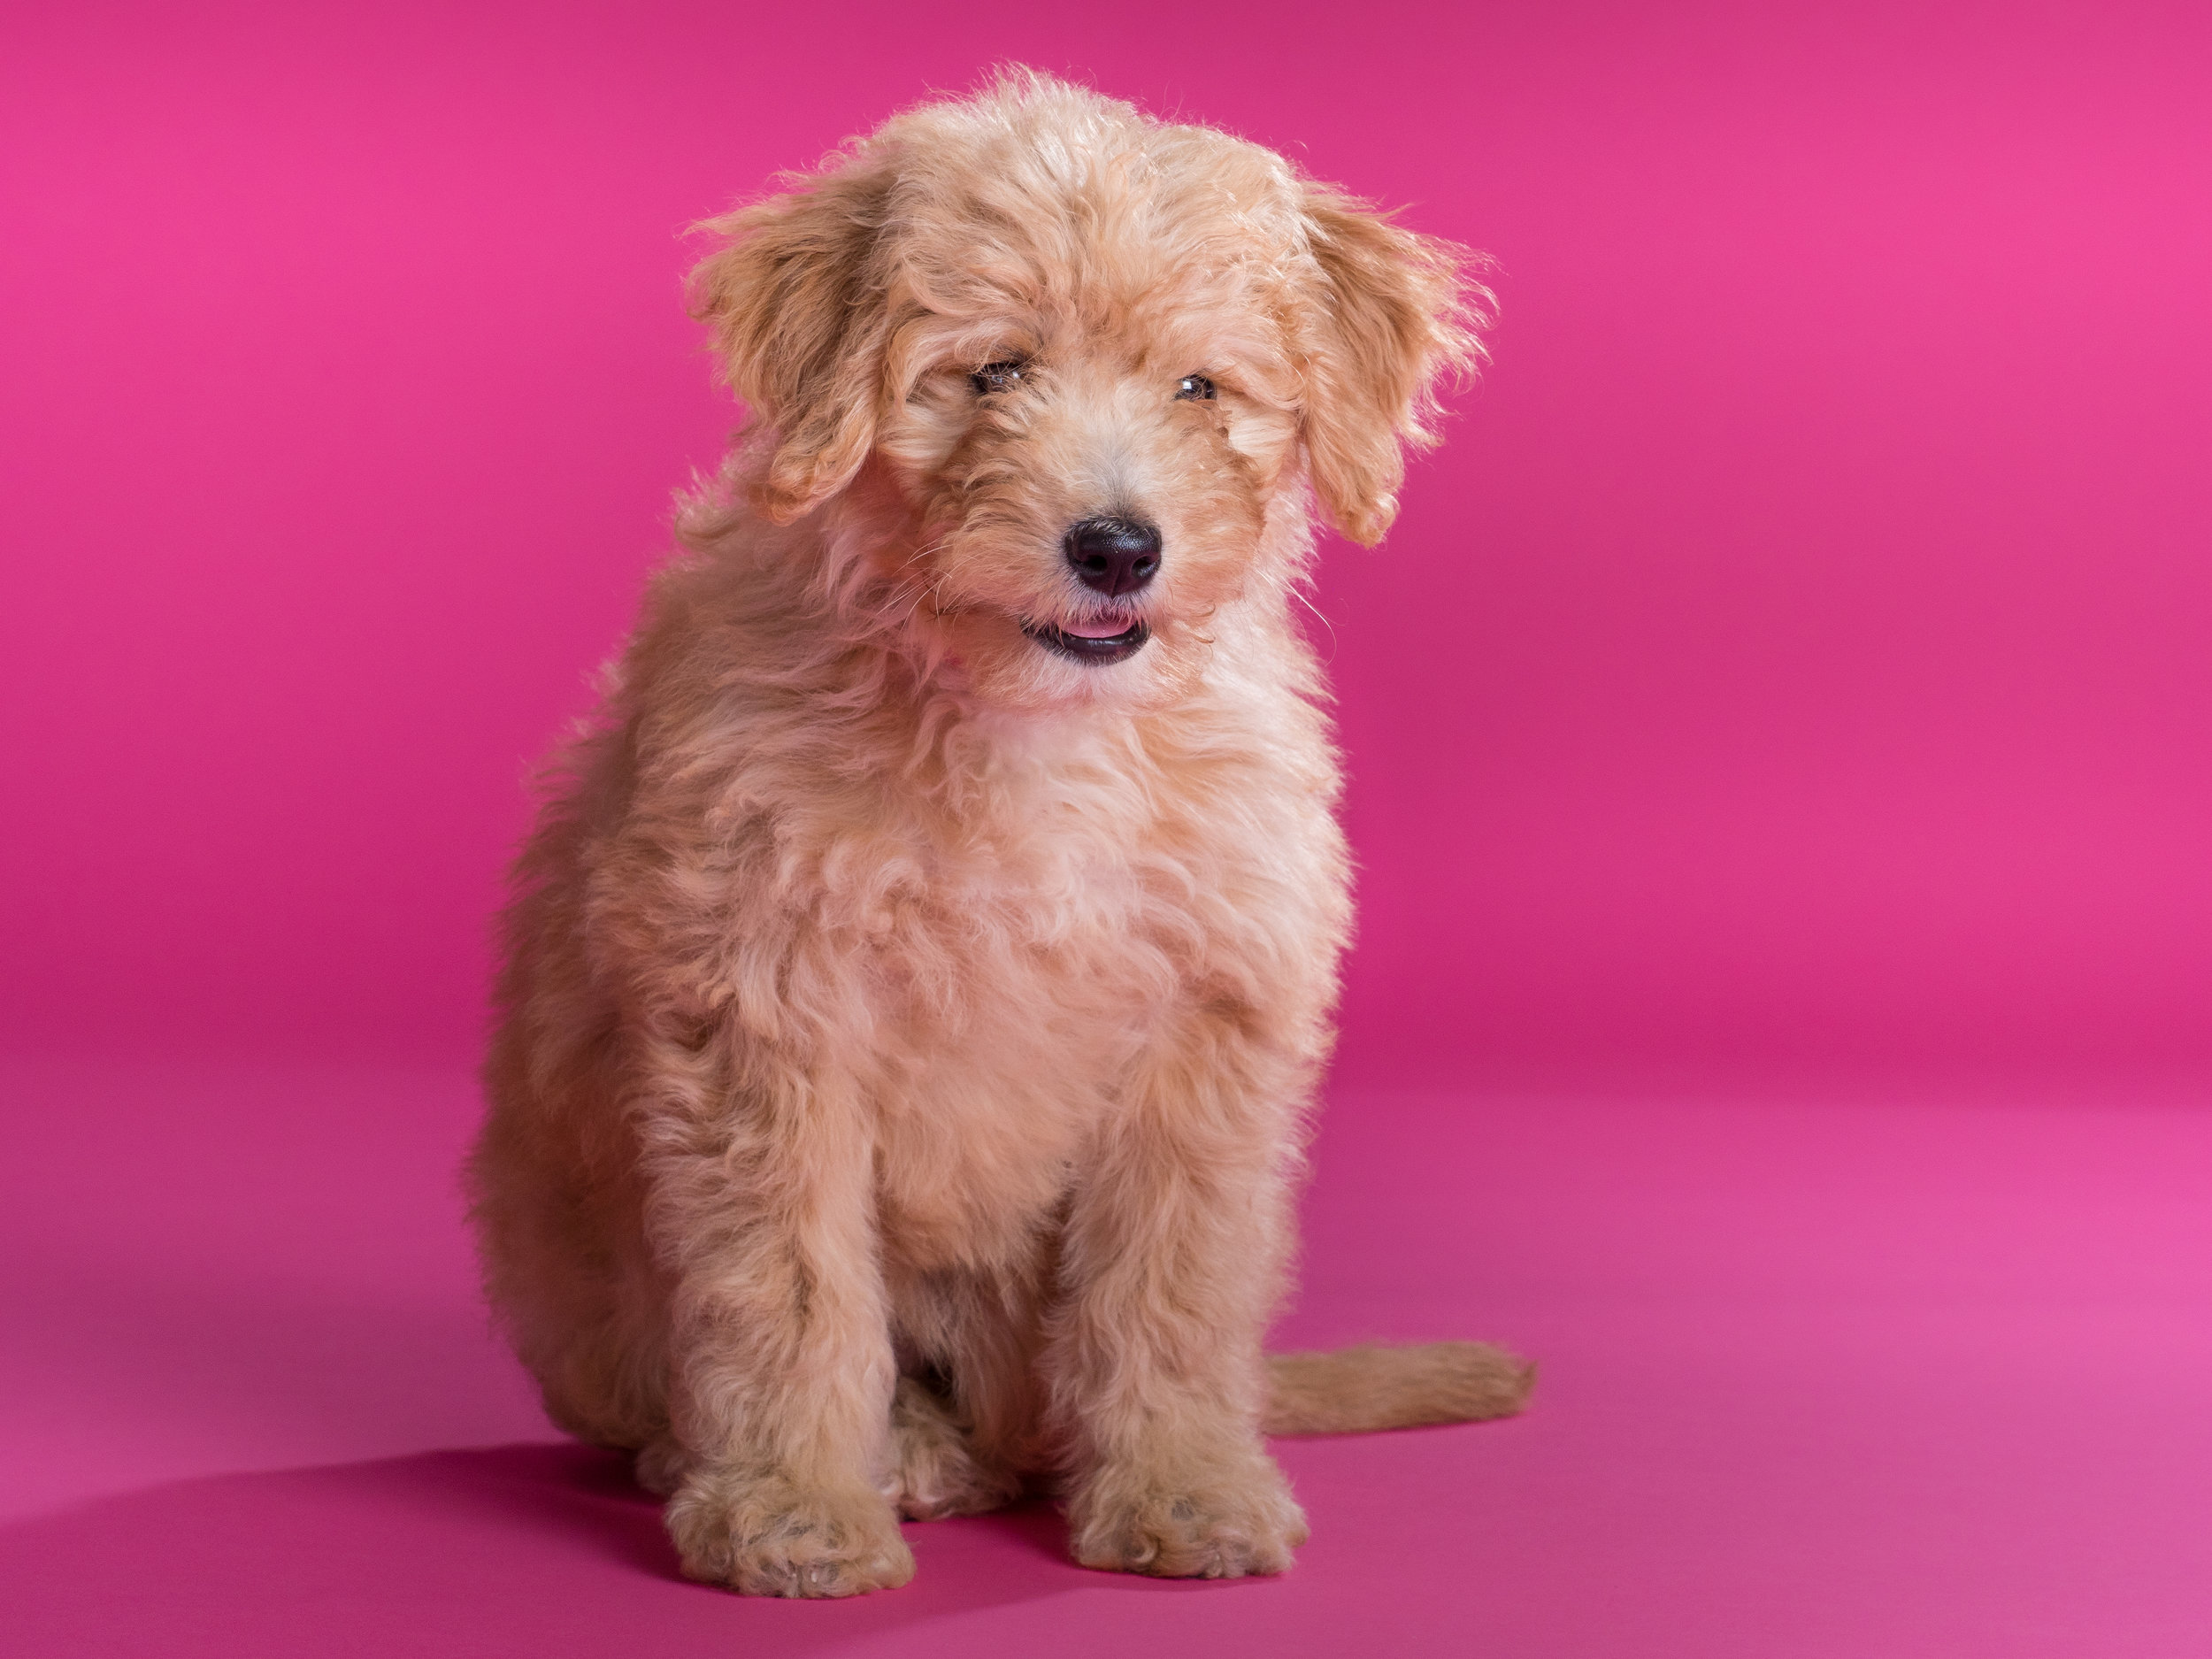 Bailey_goldendoodle_puppy_portraits_7.jpg